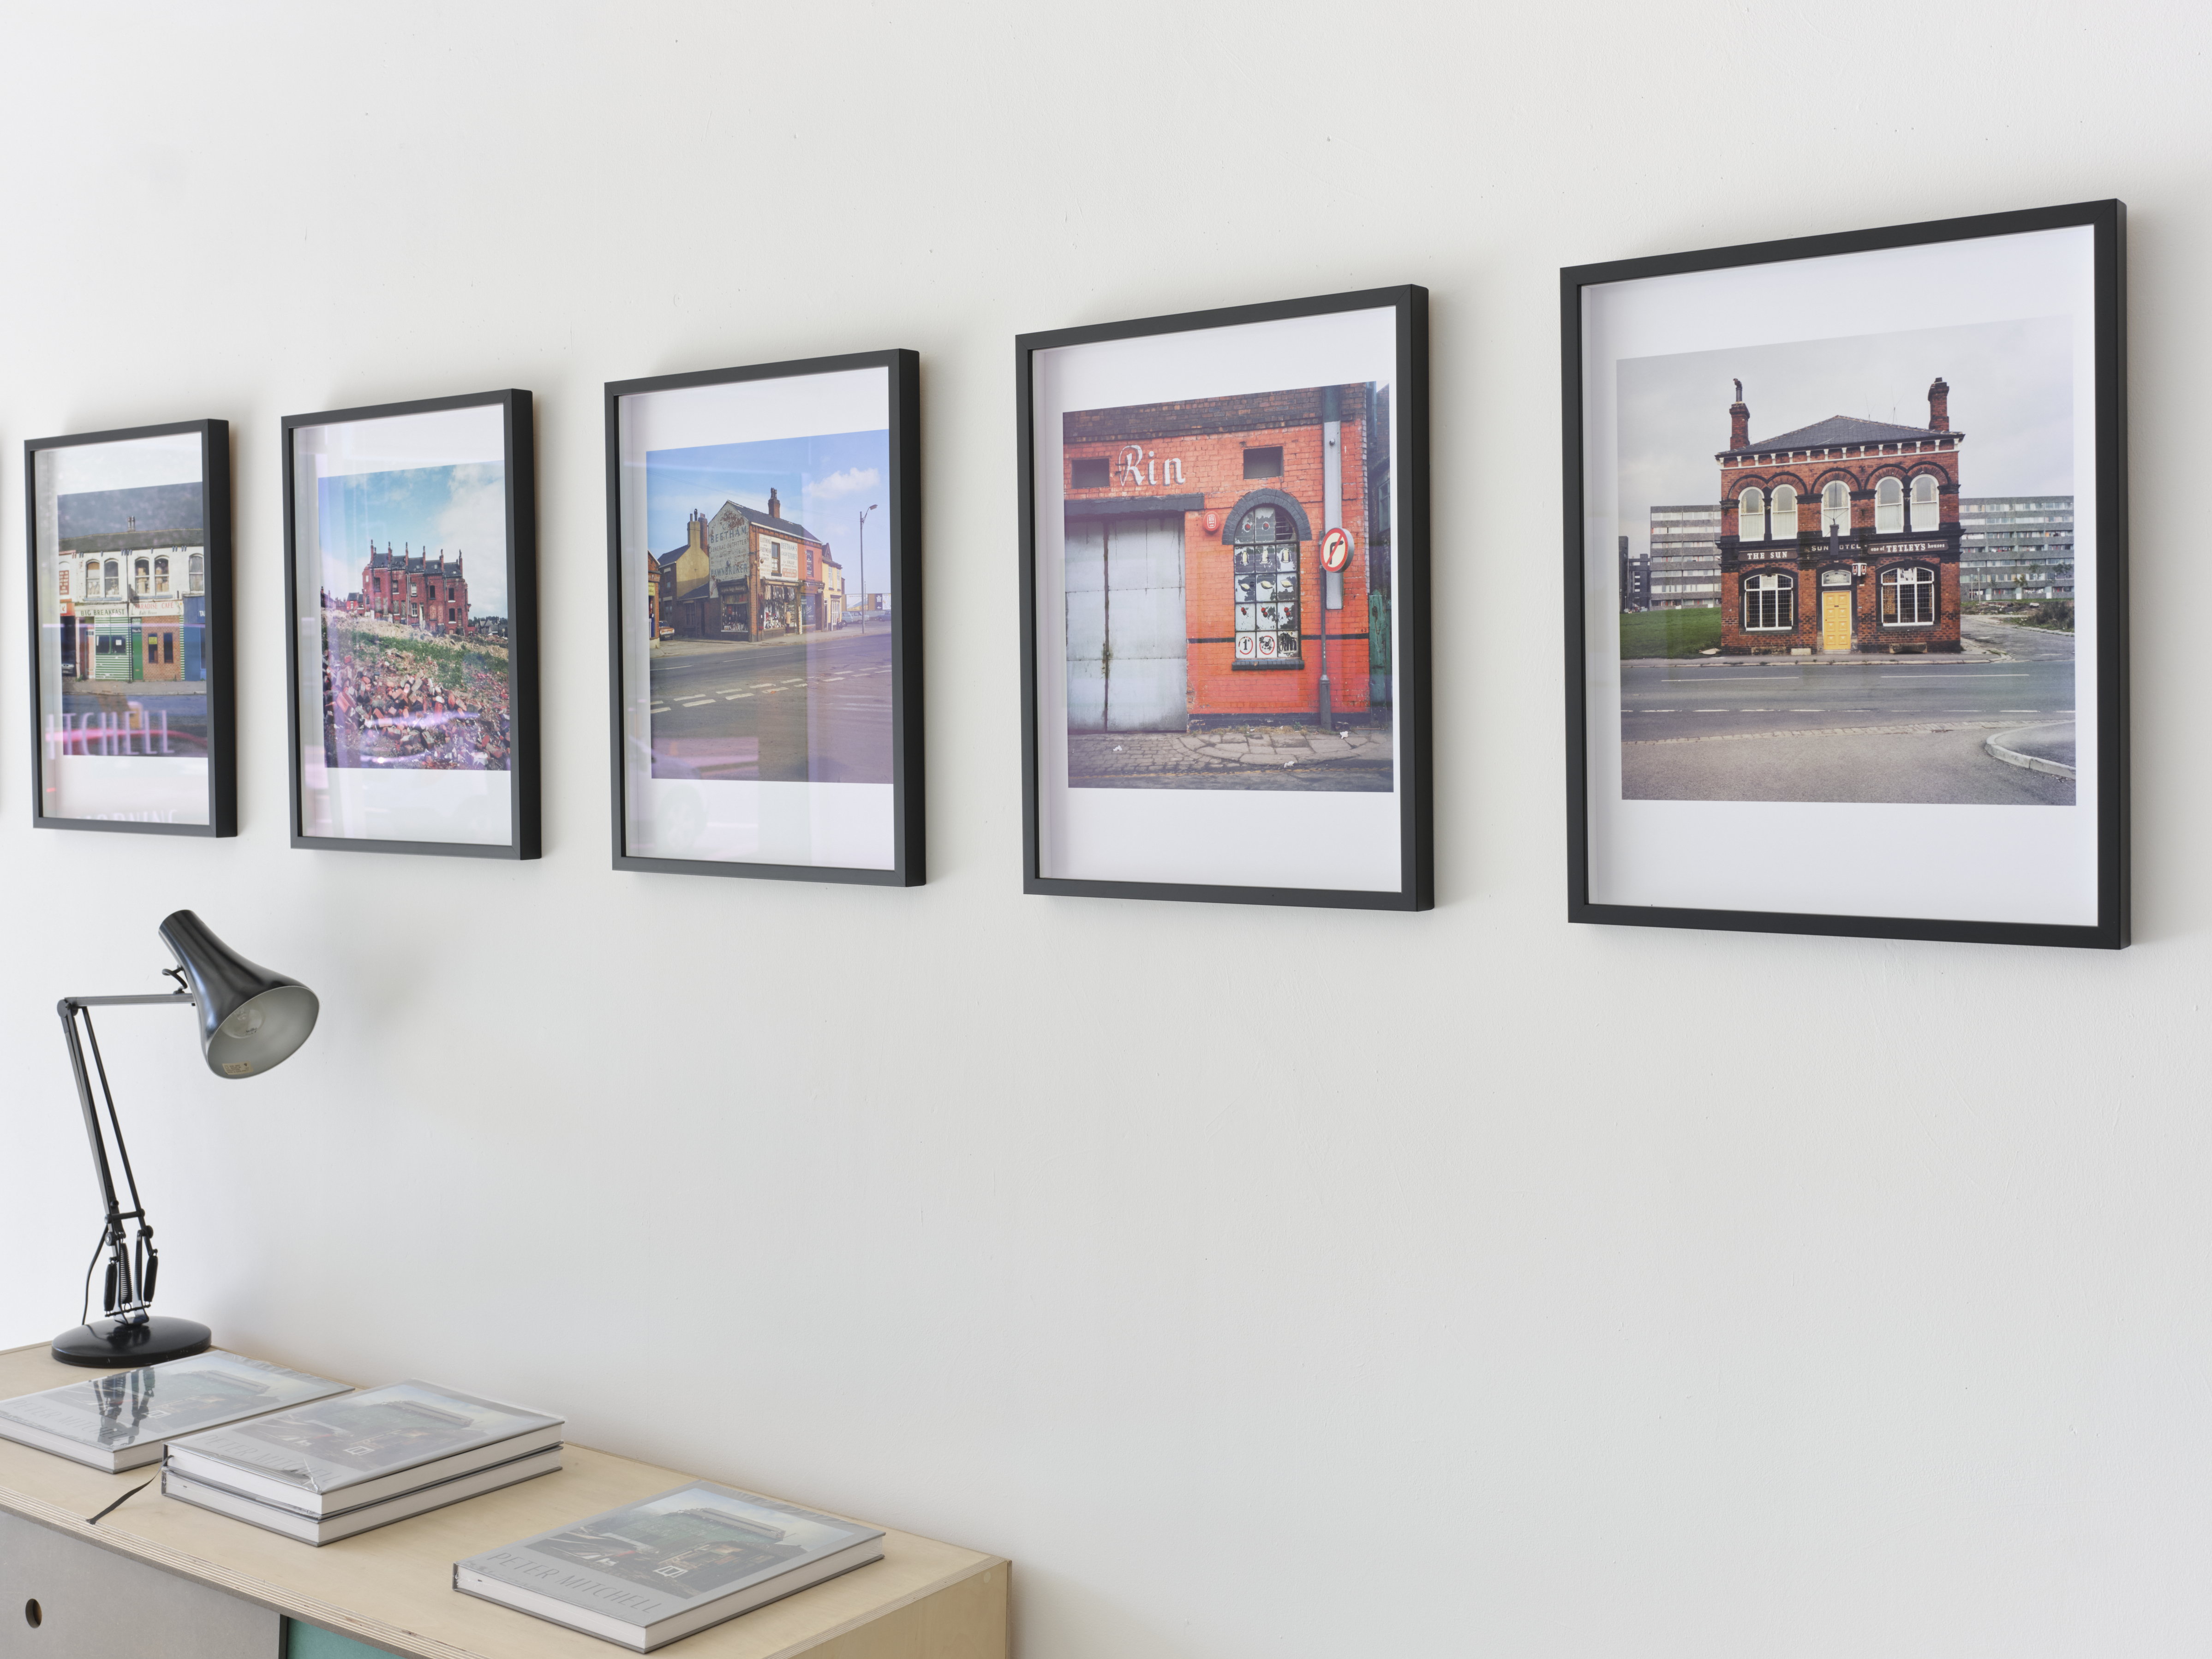 Framed Peter Mitchell photographs hanging on the wall of a gallery